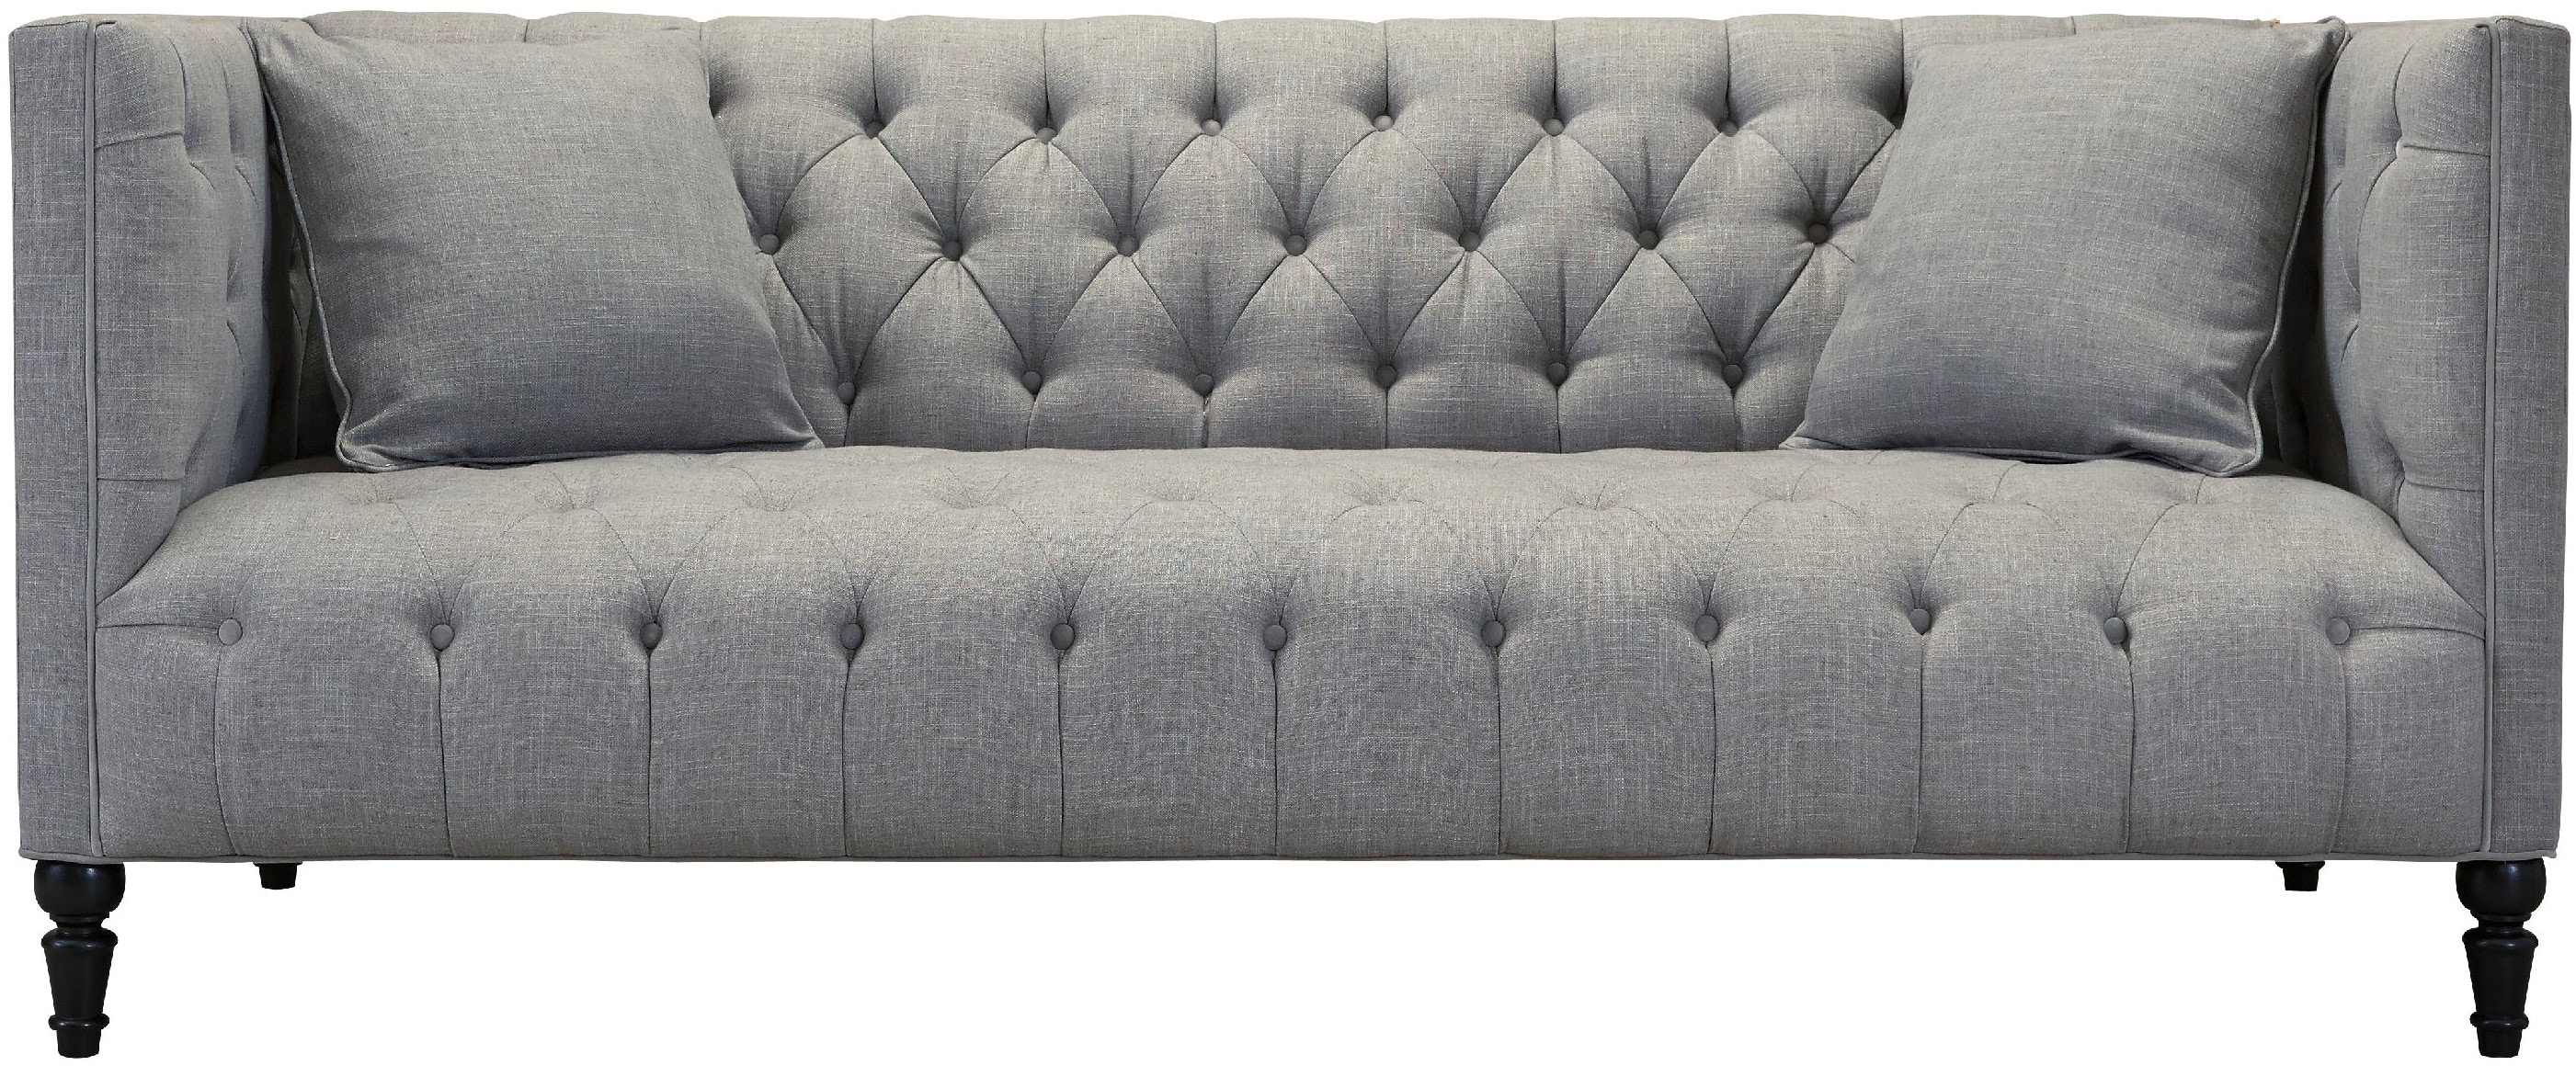 Southern Furniture Living Room Alexandria Sofa Whitley